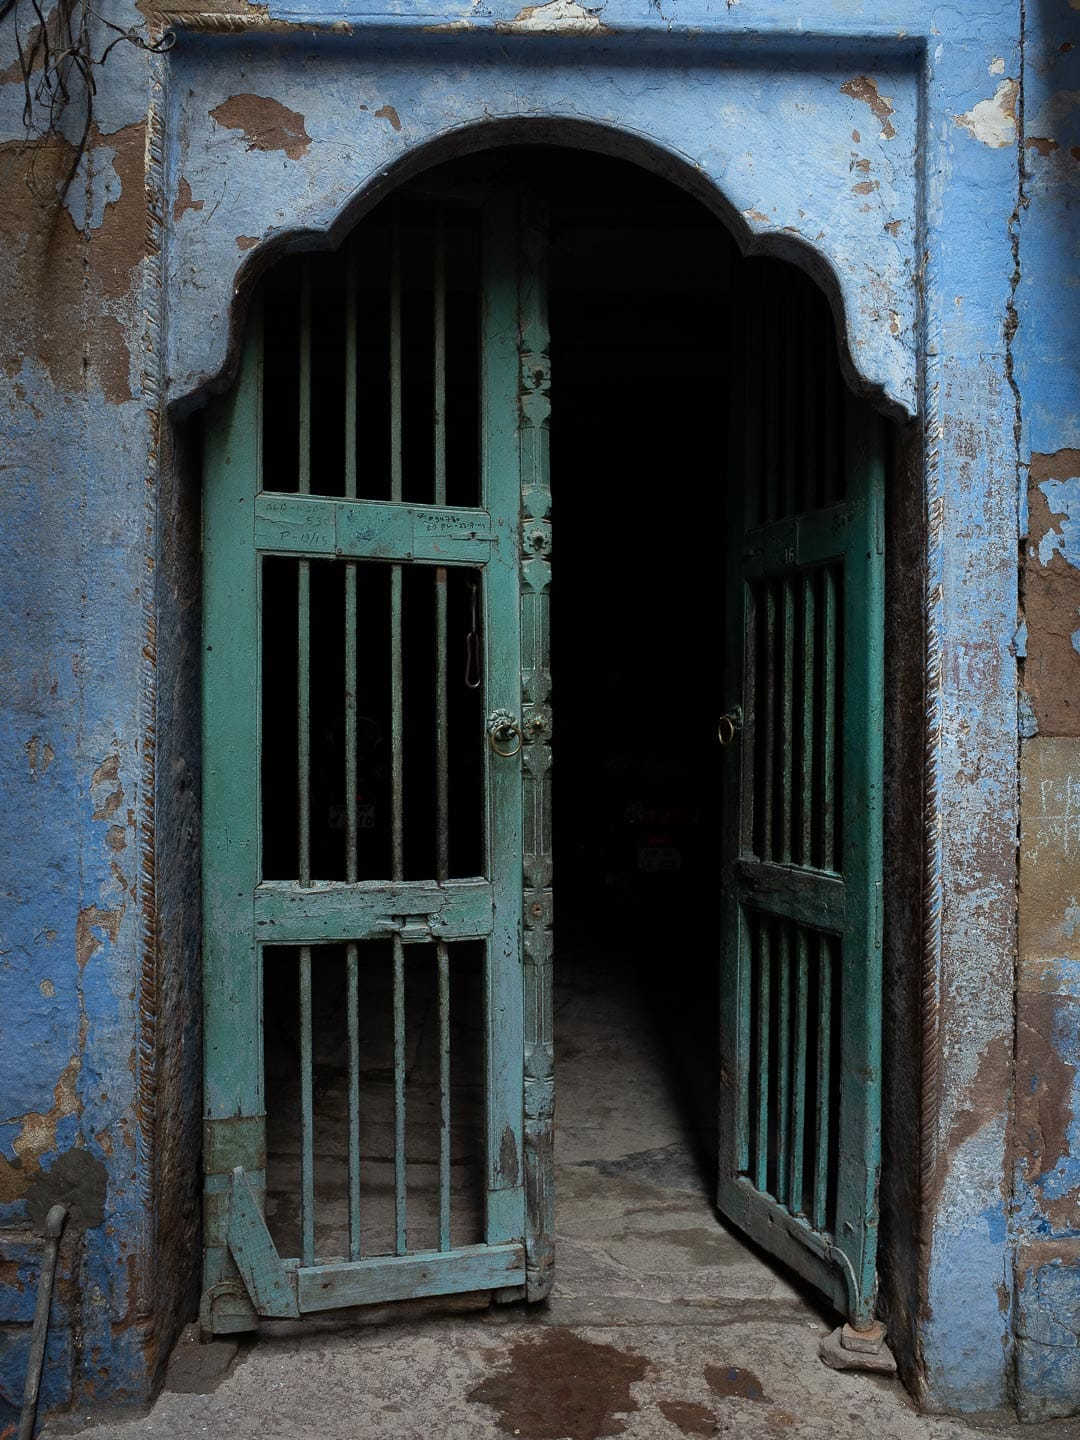 An old blue and green gate in Varanasi, India